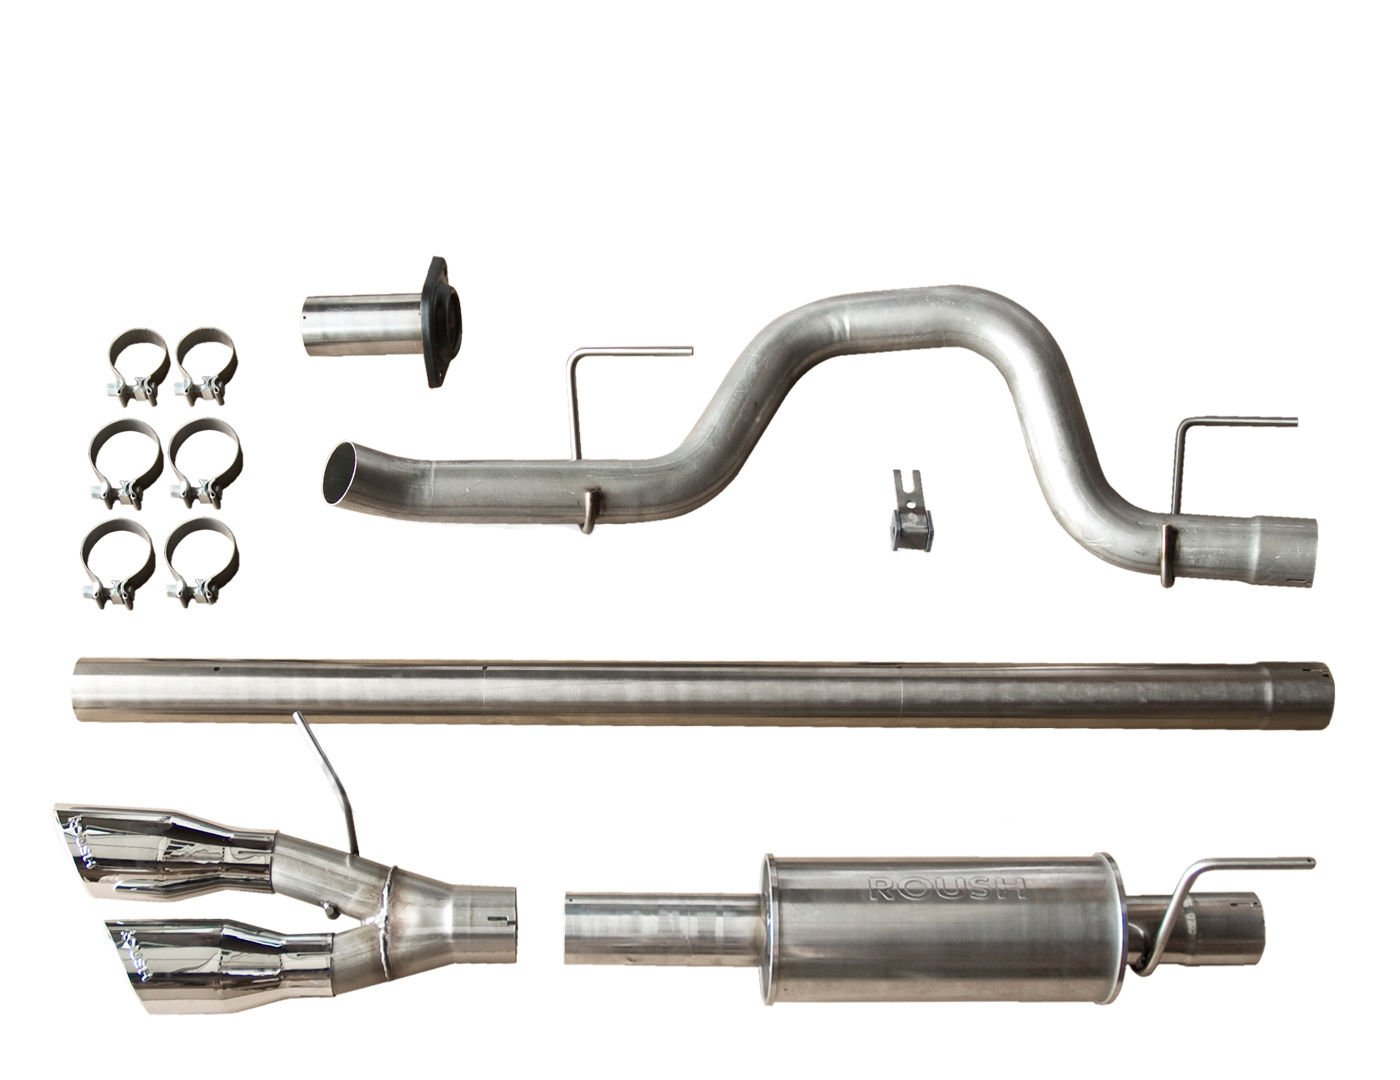 2. Roush 421711 F-150 Cat-Back Exhaust for 6.2L / 5.0L / 3.5L (2011-2014) Side Exit